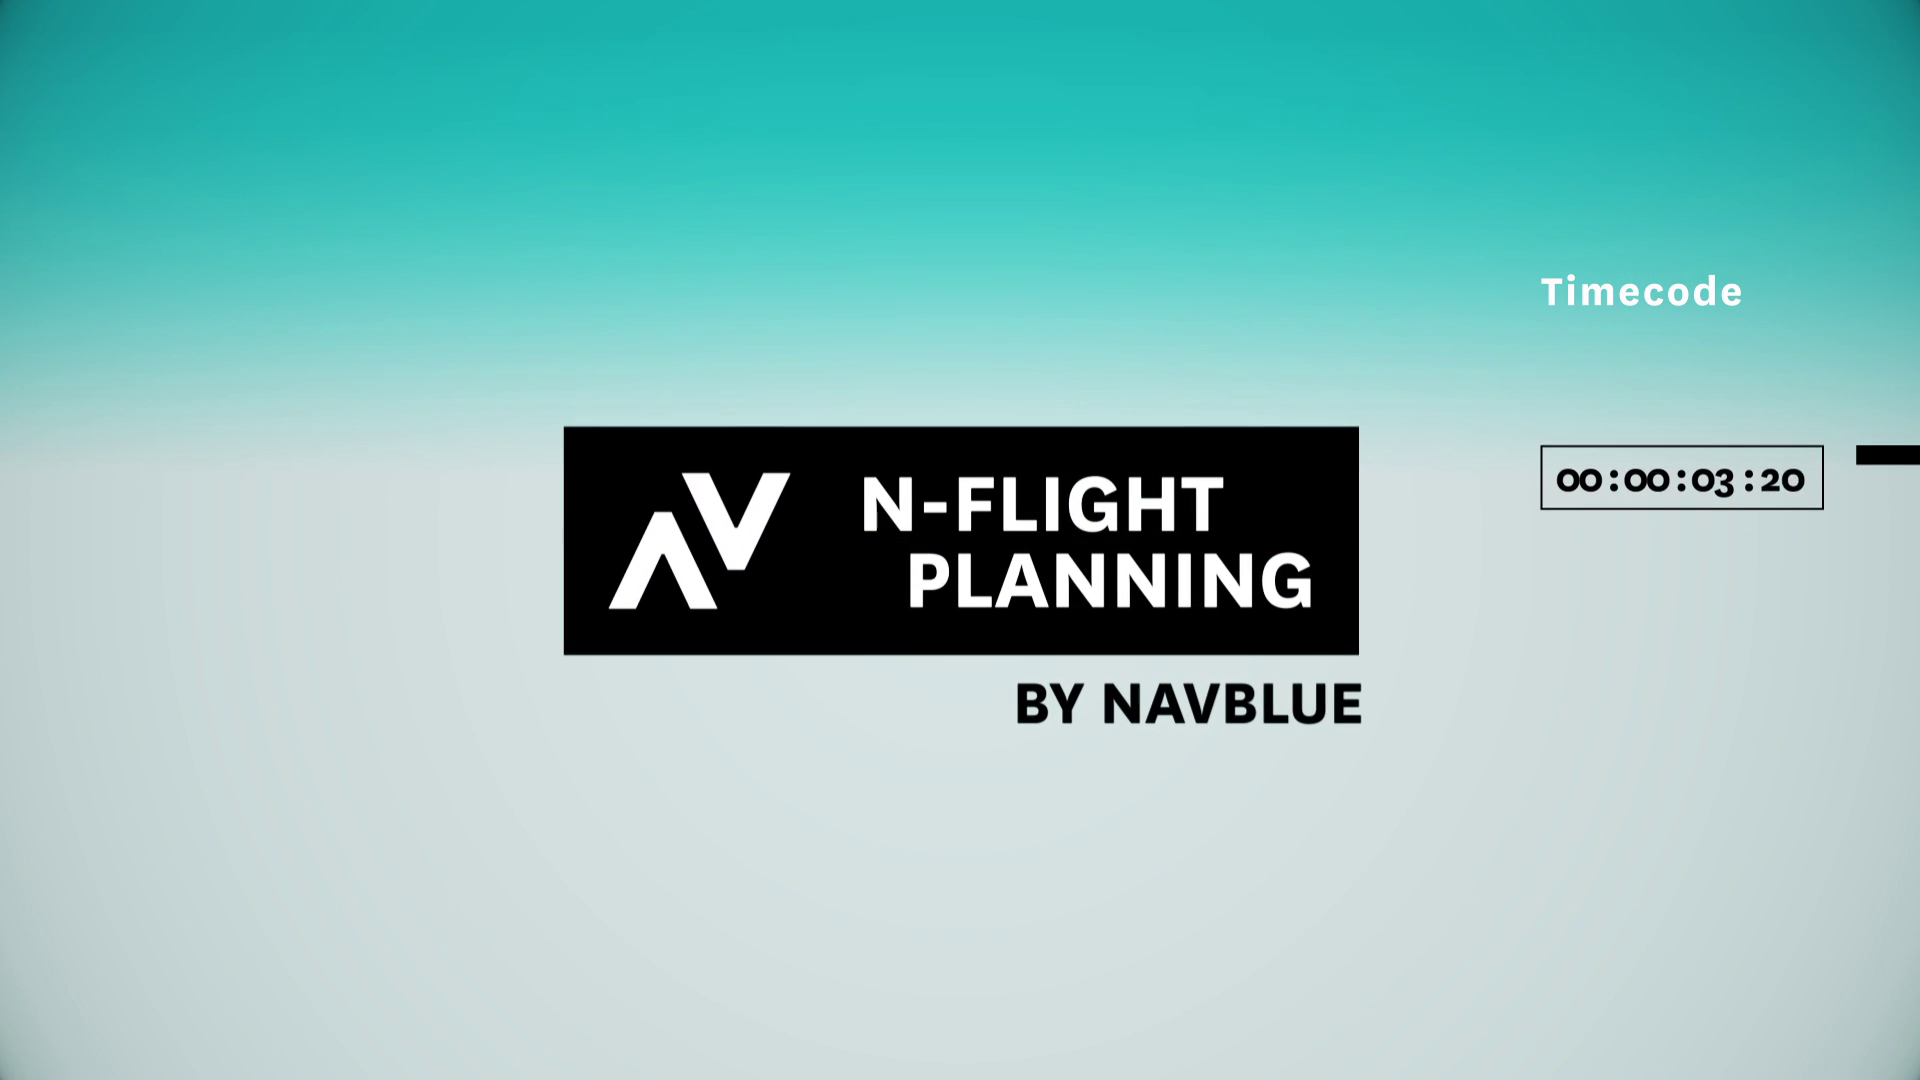 NAVBLUE N-Flight Planning